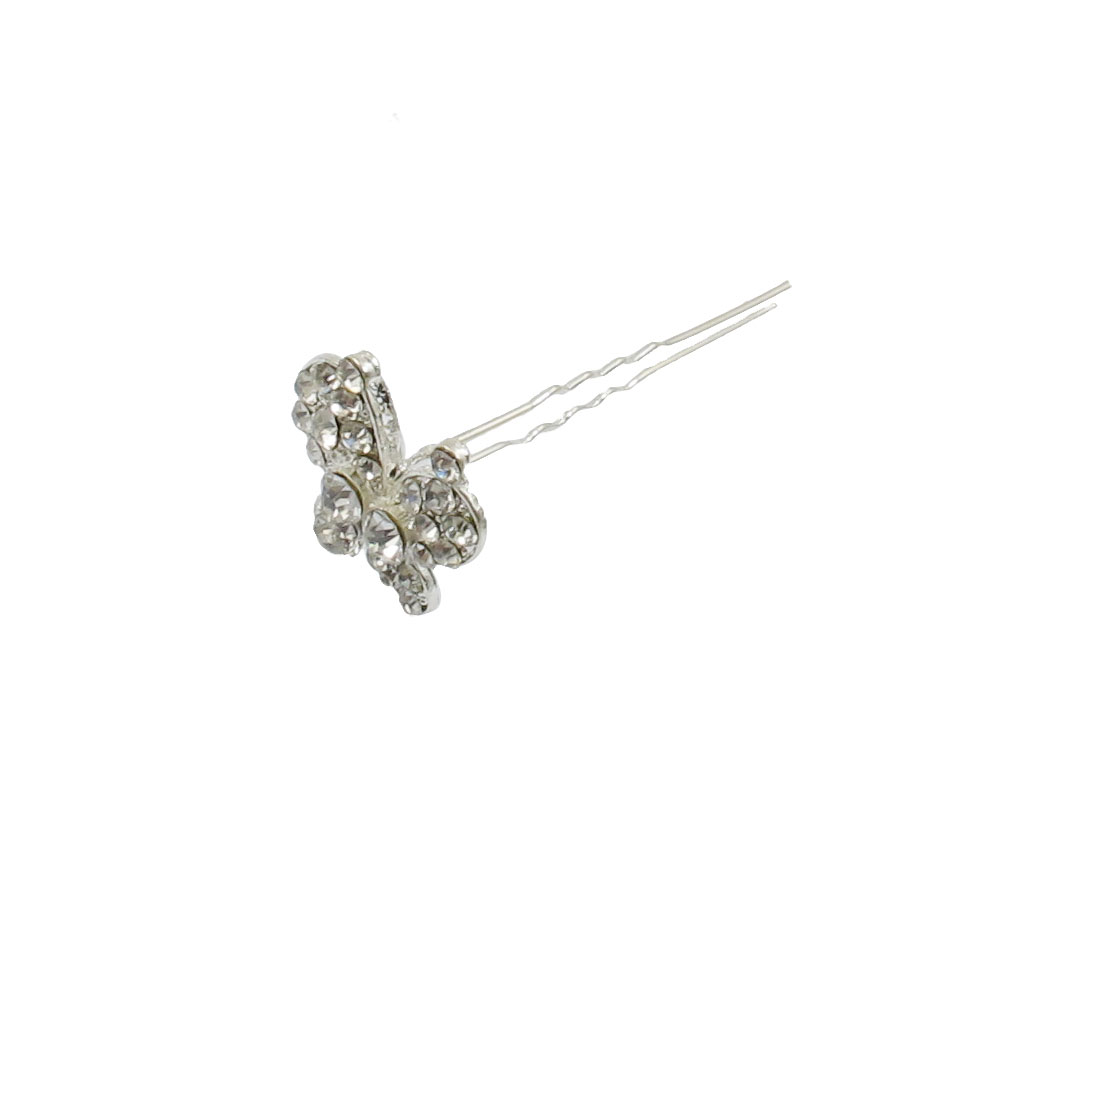 Rhinestone Decor Butterfly End Hair Pin Stick Decoration for Lady